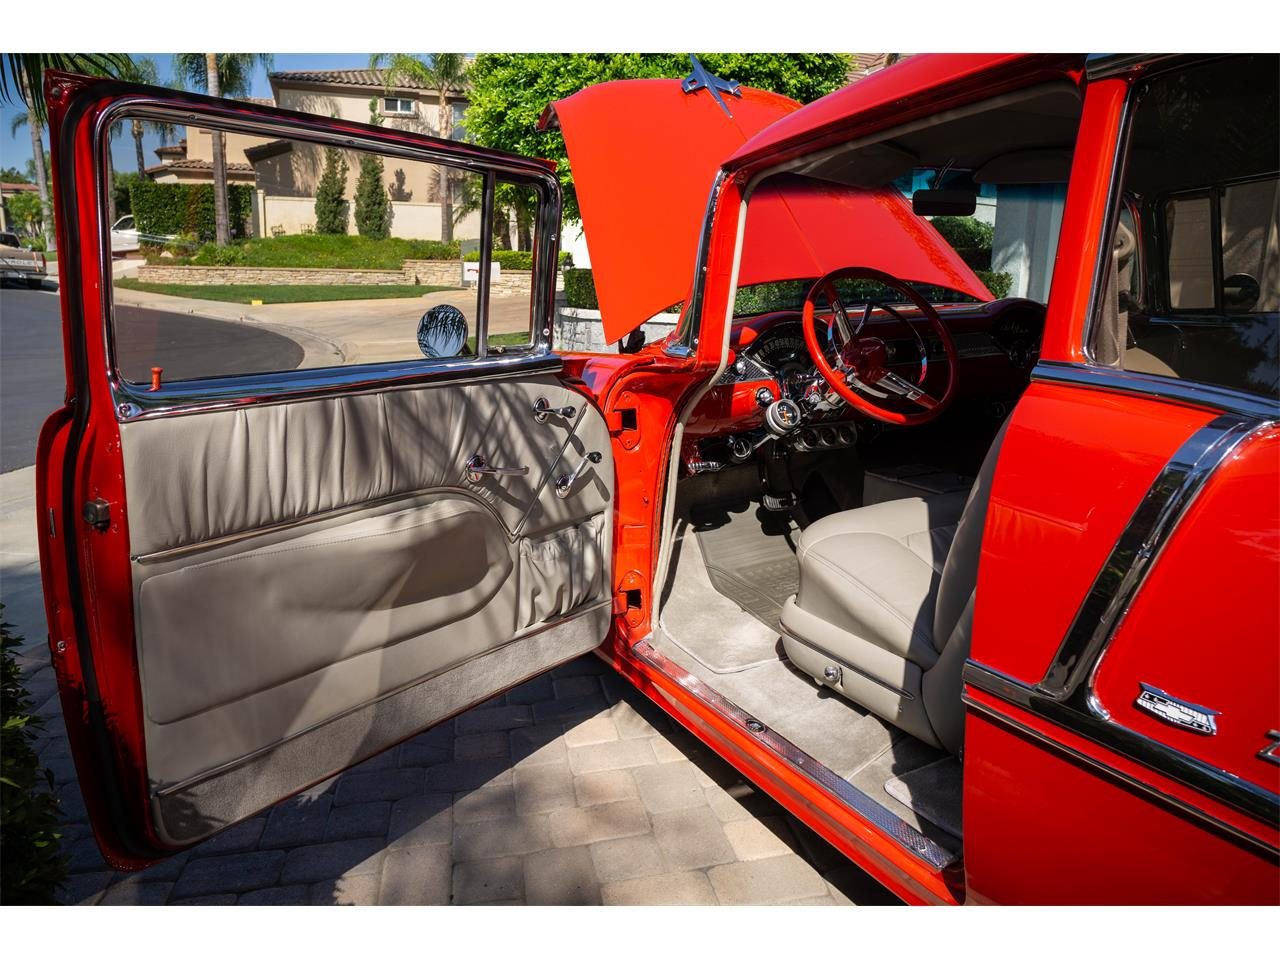 Large Picture of 1955 Bel Air located in ANAHEIM California - $47,500.00 Offered by a Private Seller - QIUE